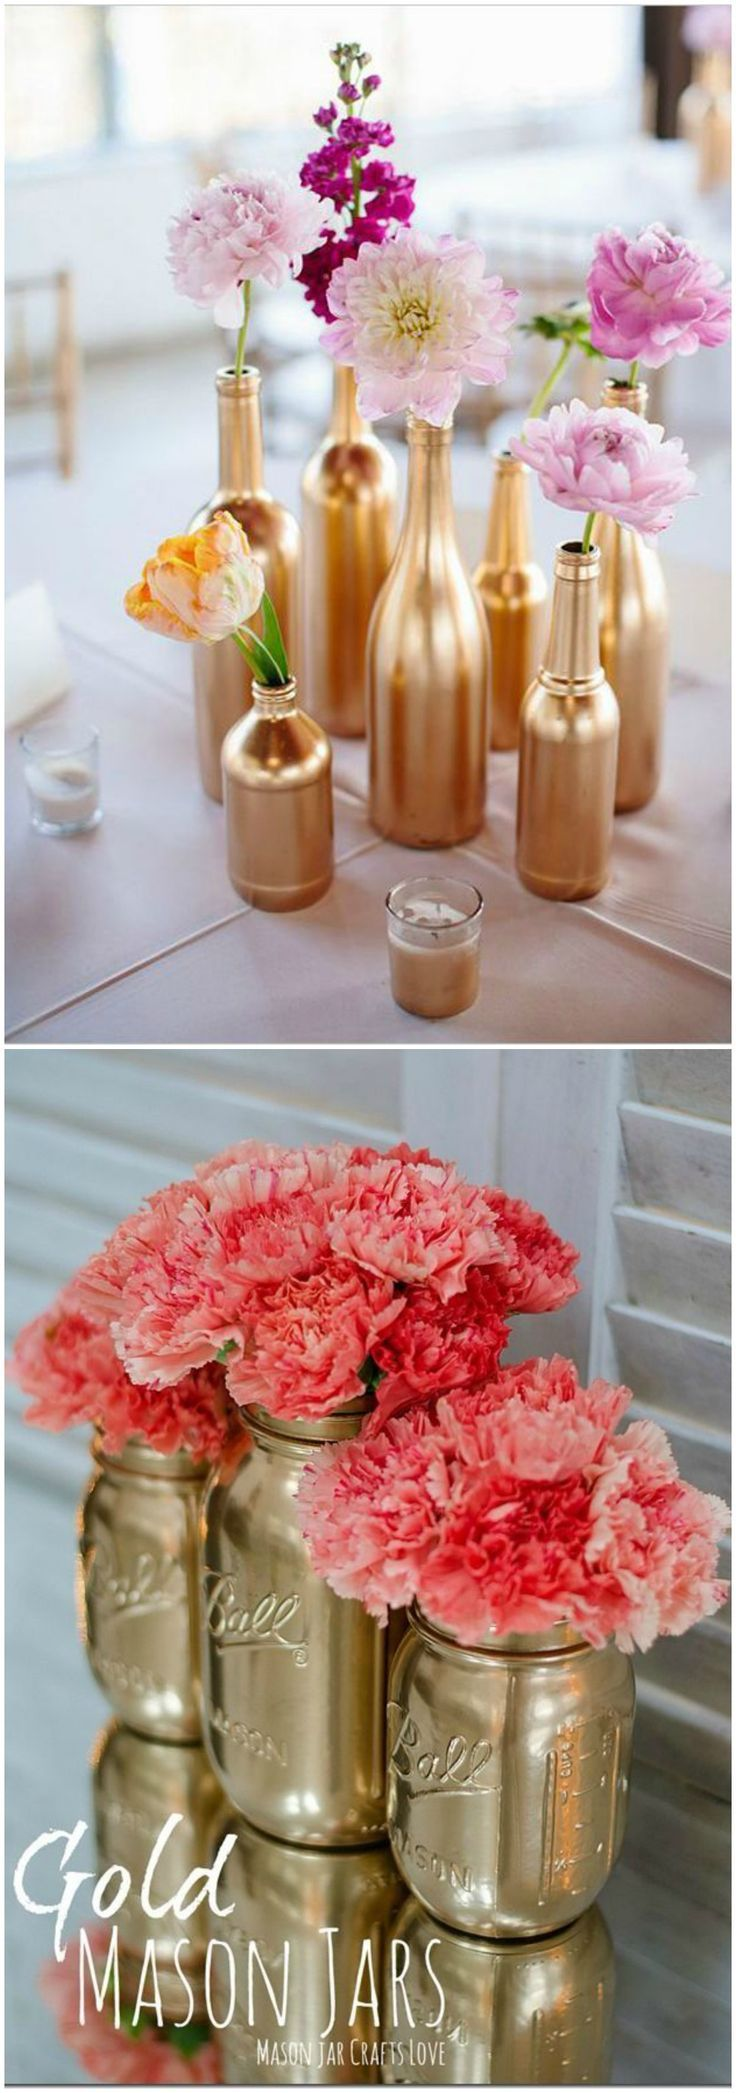 Diy Spray Paint Ideas 33 - 38+ Beautiful DIY Spray Paint Ideas